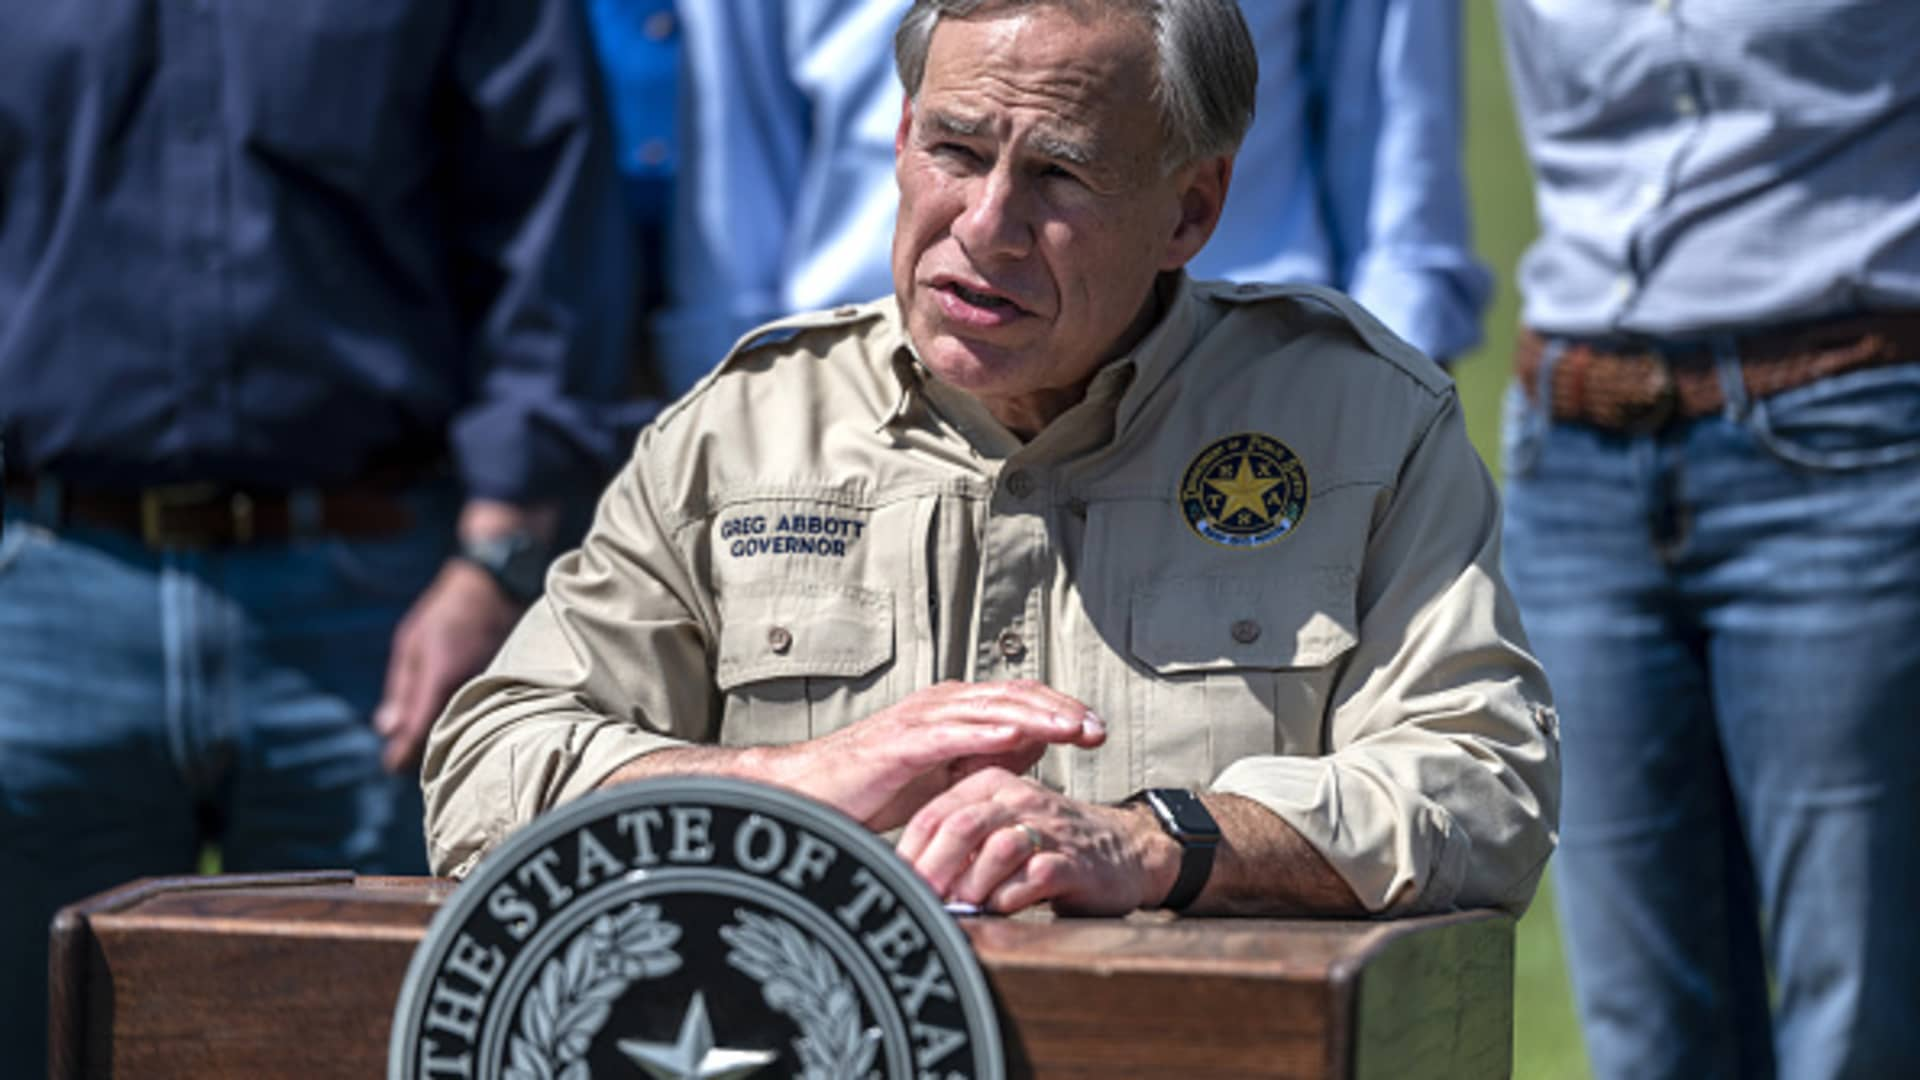 Greg Abbott, governor of Texas, speaks during a news conference in Mission, Texas, on Wednesday, Oct. 6, 2021.